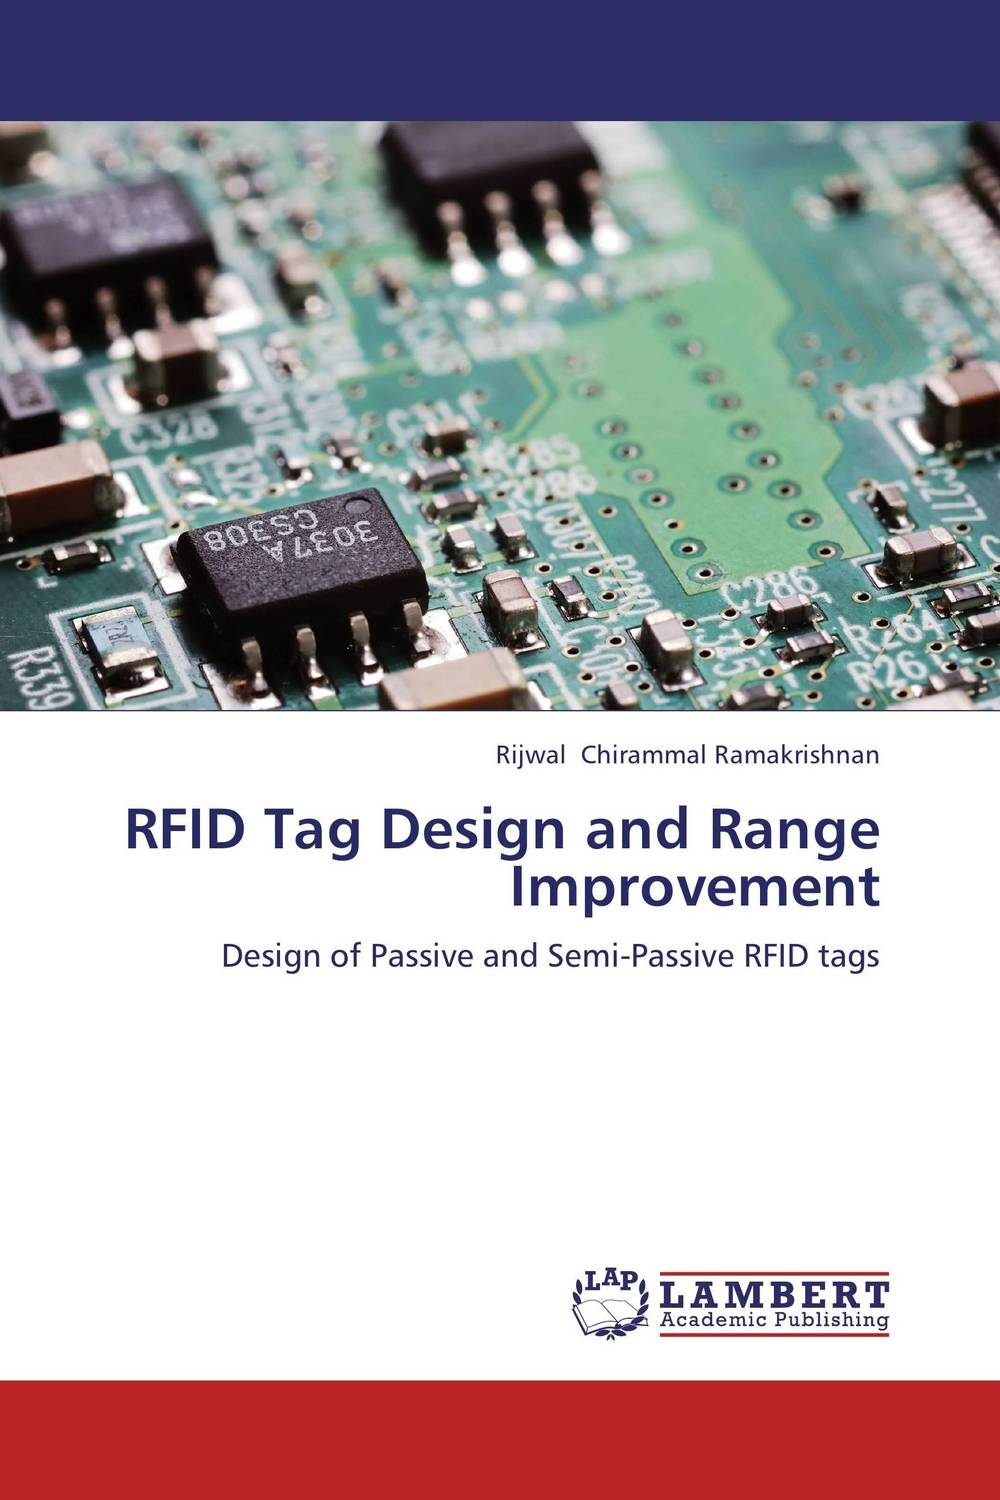 RFID Tag Design and Range Improvement 125khz rs232 long range passive rfid reader support em4200 card and tk4100 card used for automated parking management system